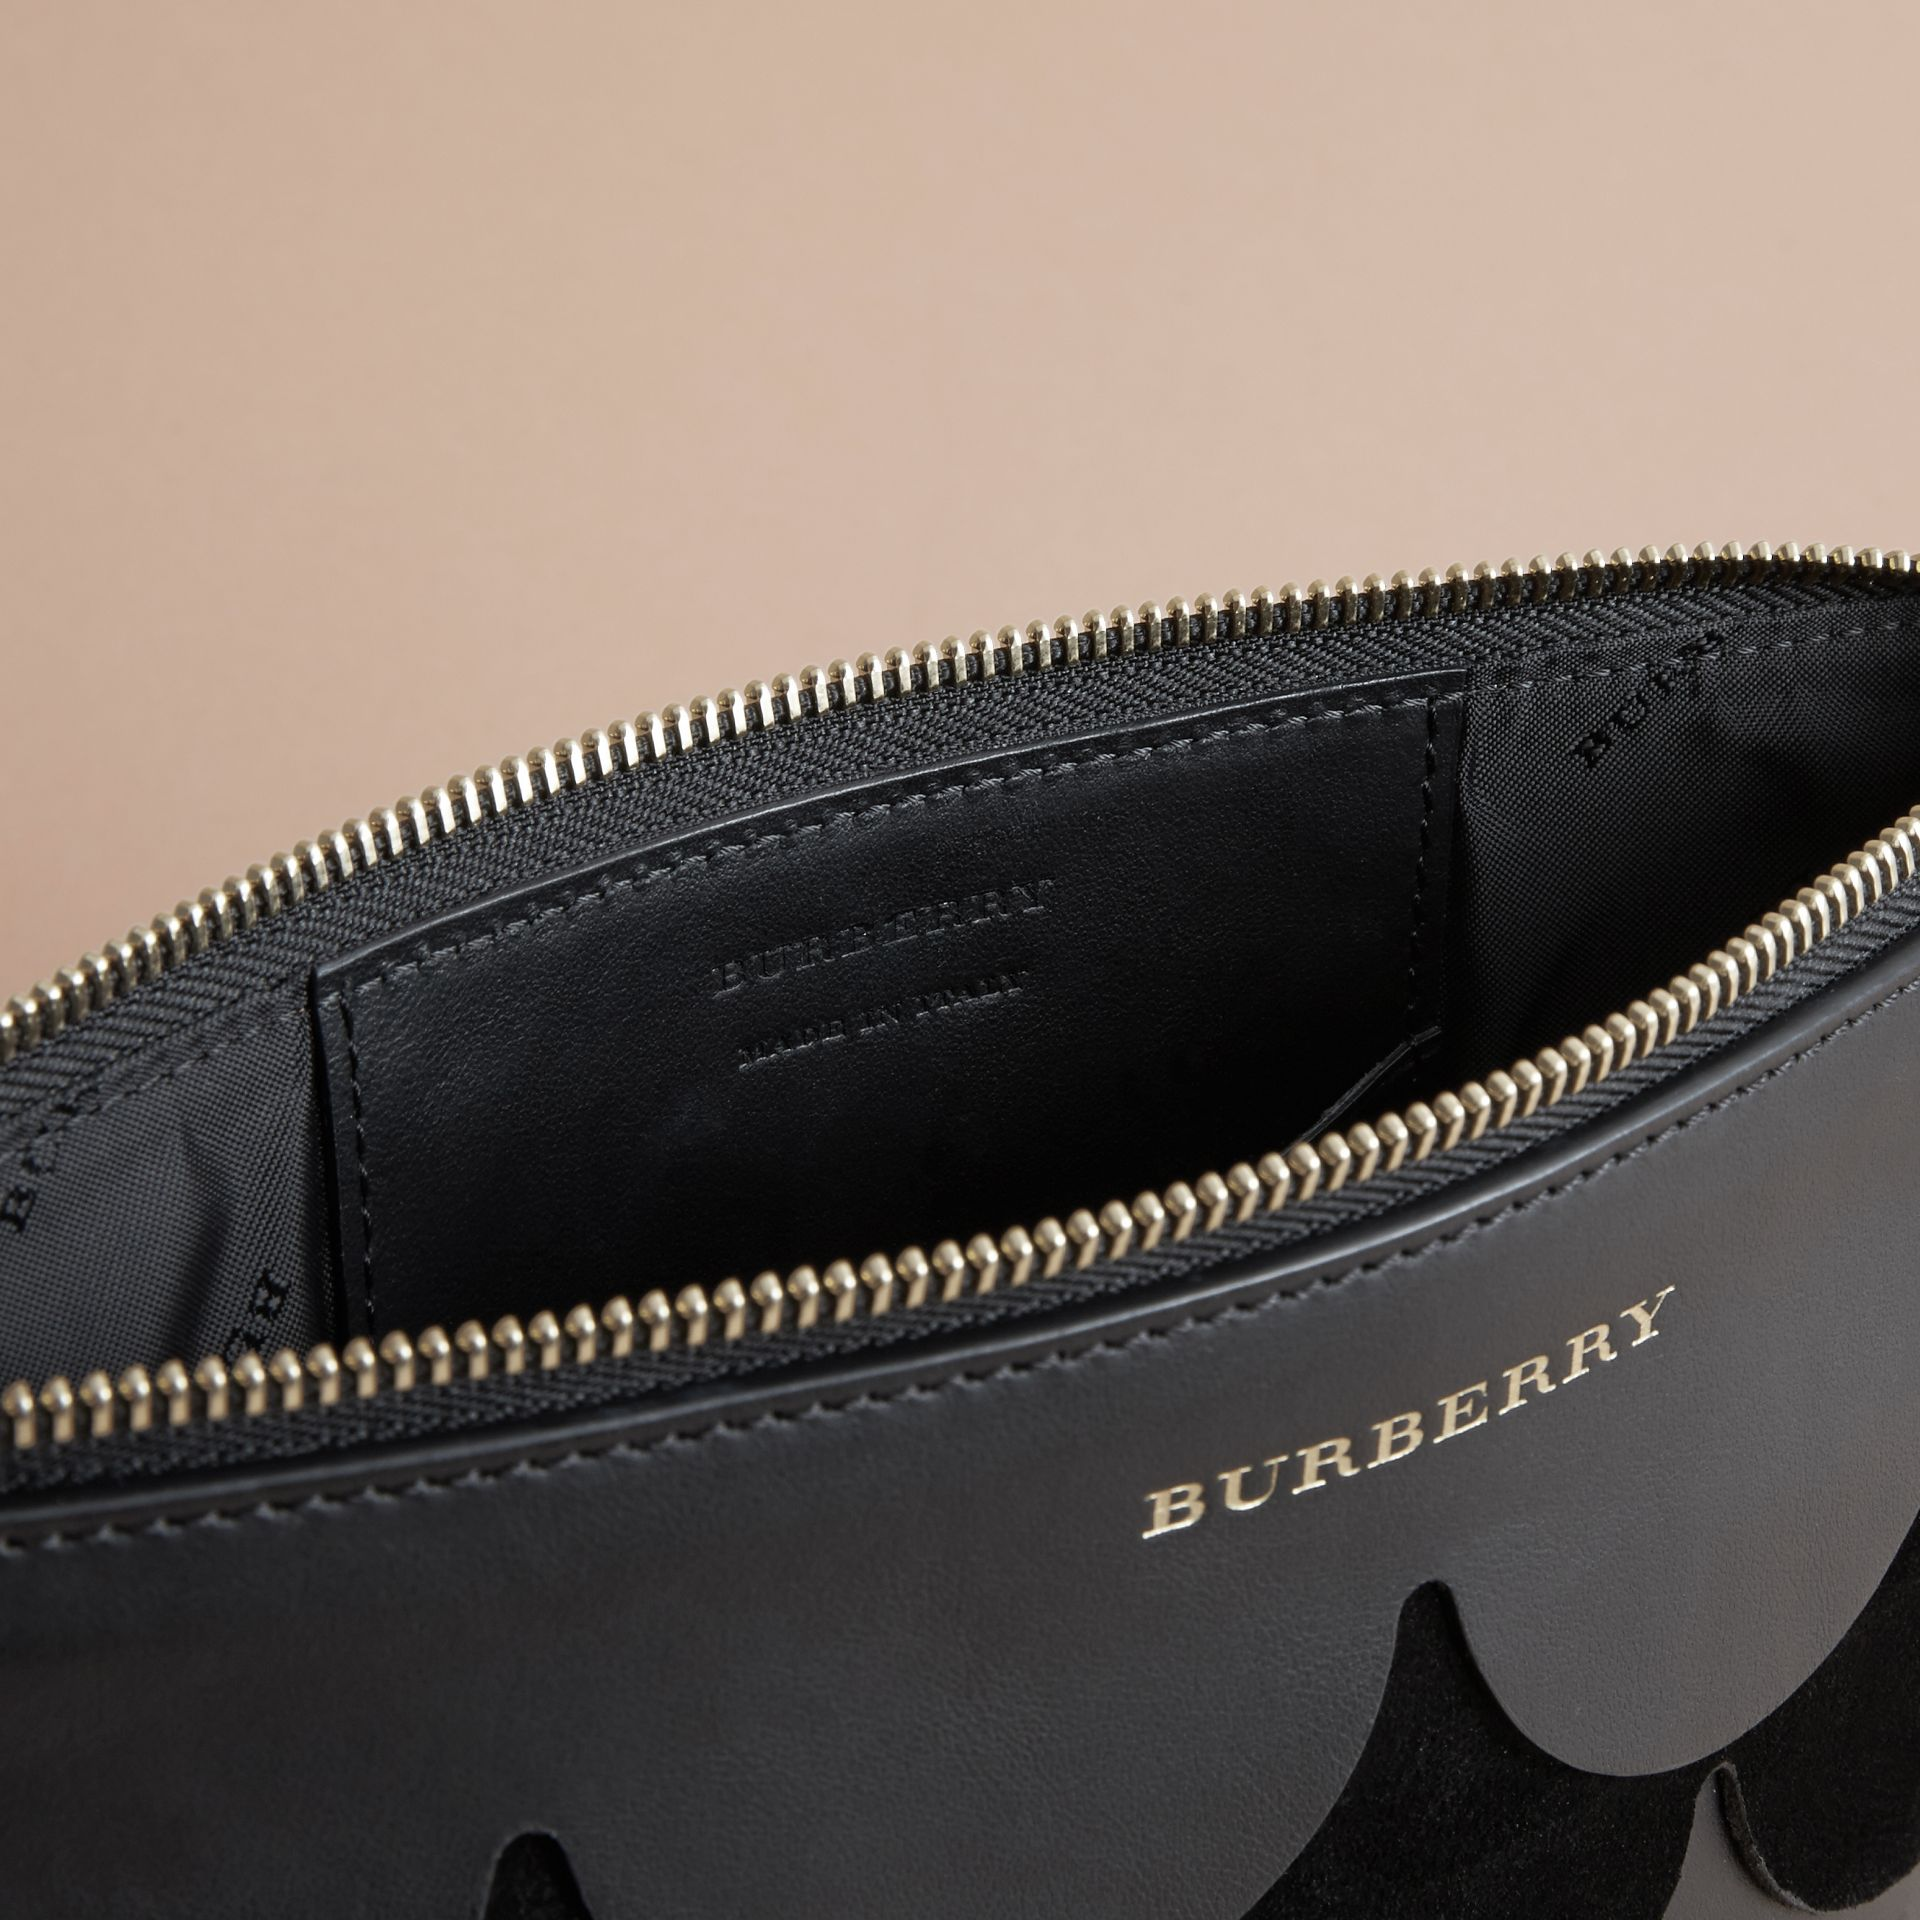 Two-tone Scalloped Leather and Suede Clutch Bag in Black - Women | Burberry - gallery image 6